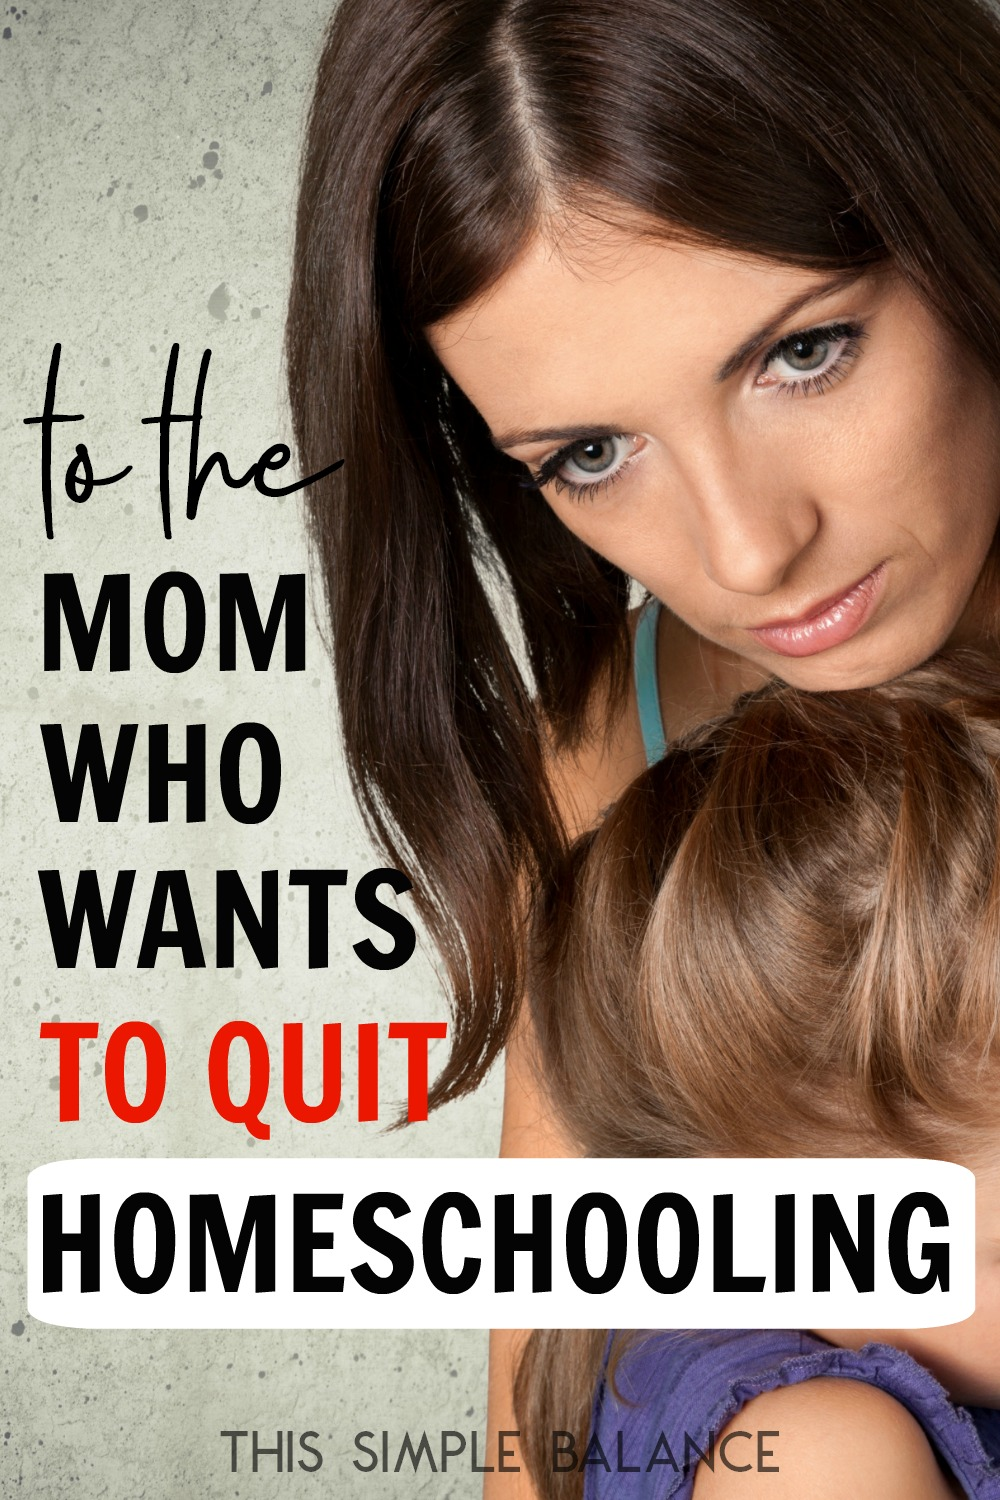 Thinking about quitting homeschooling? You're not alone, and you need to read this.